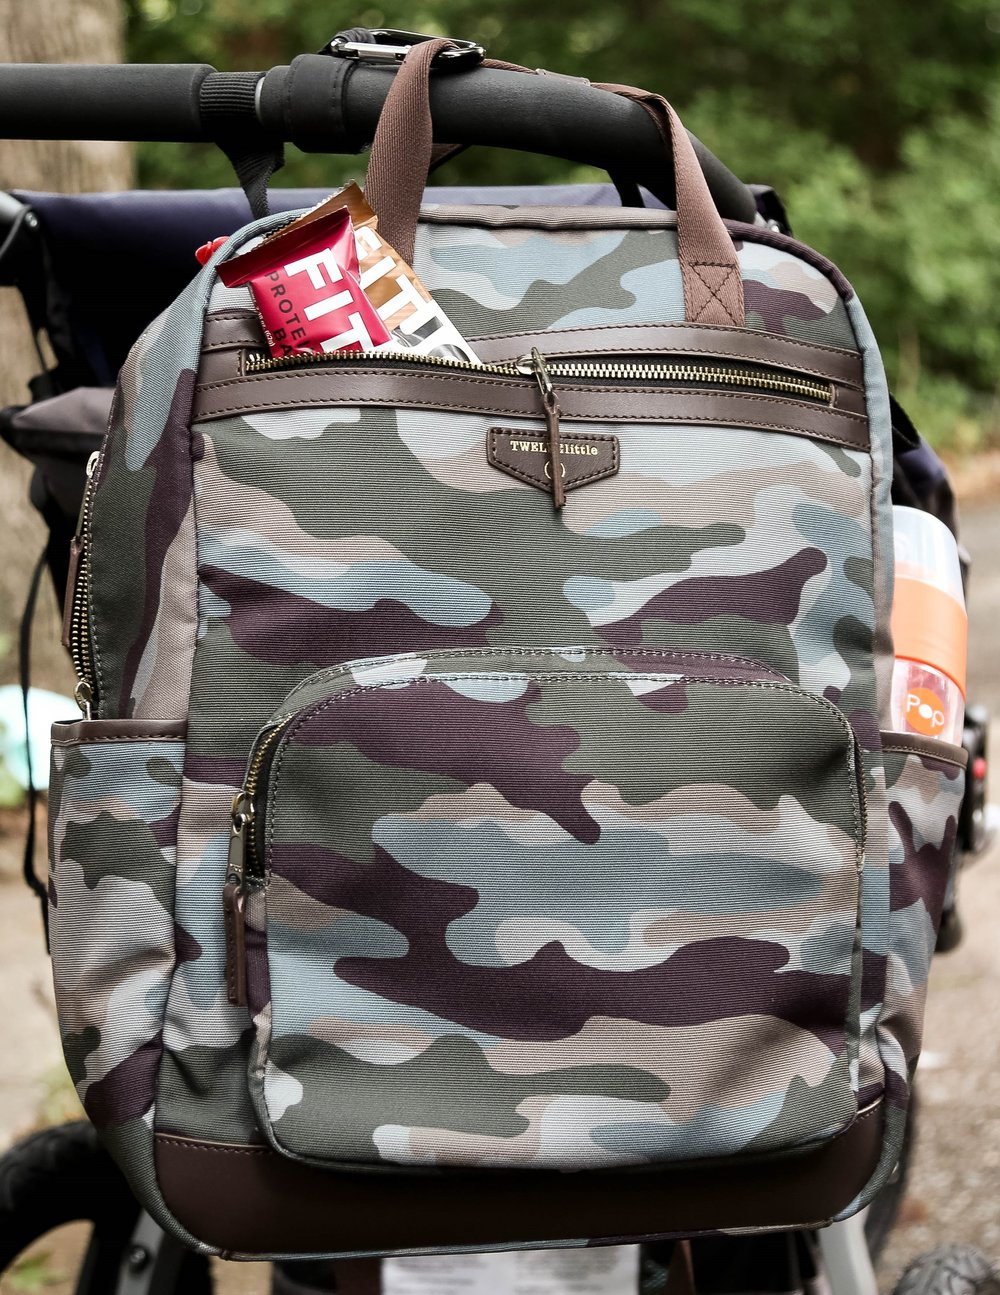 Twelve Little  Unisex Courage Backpack Camo Print says we're in this together as a family and travel as a team